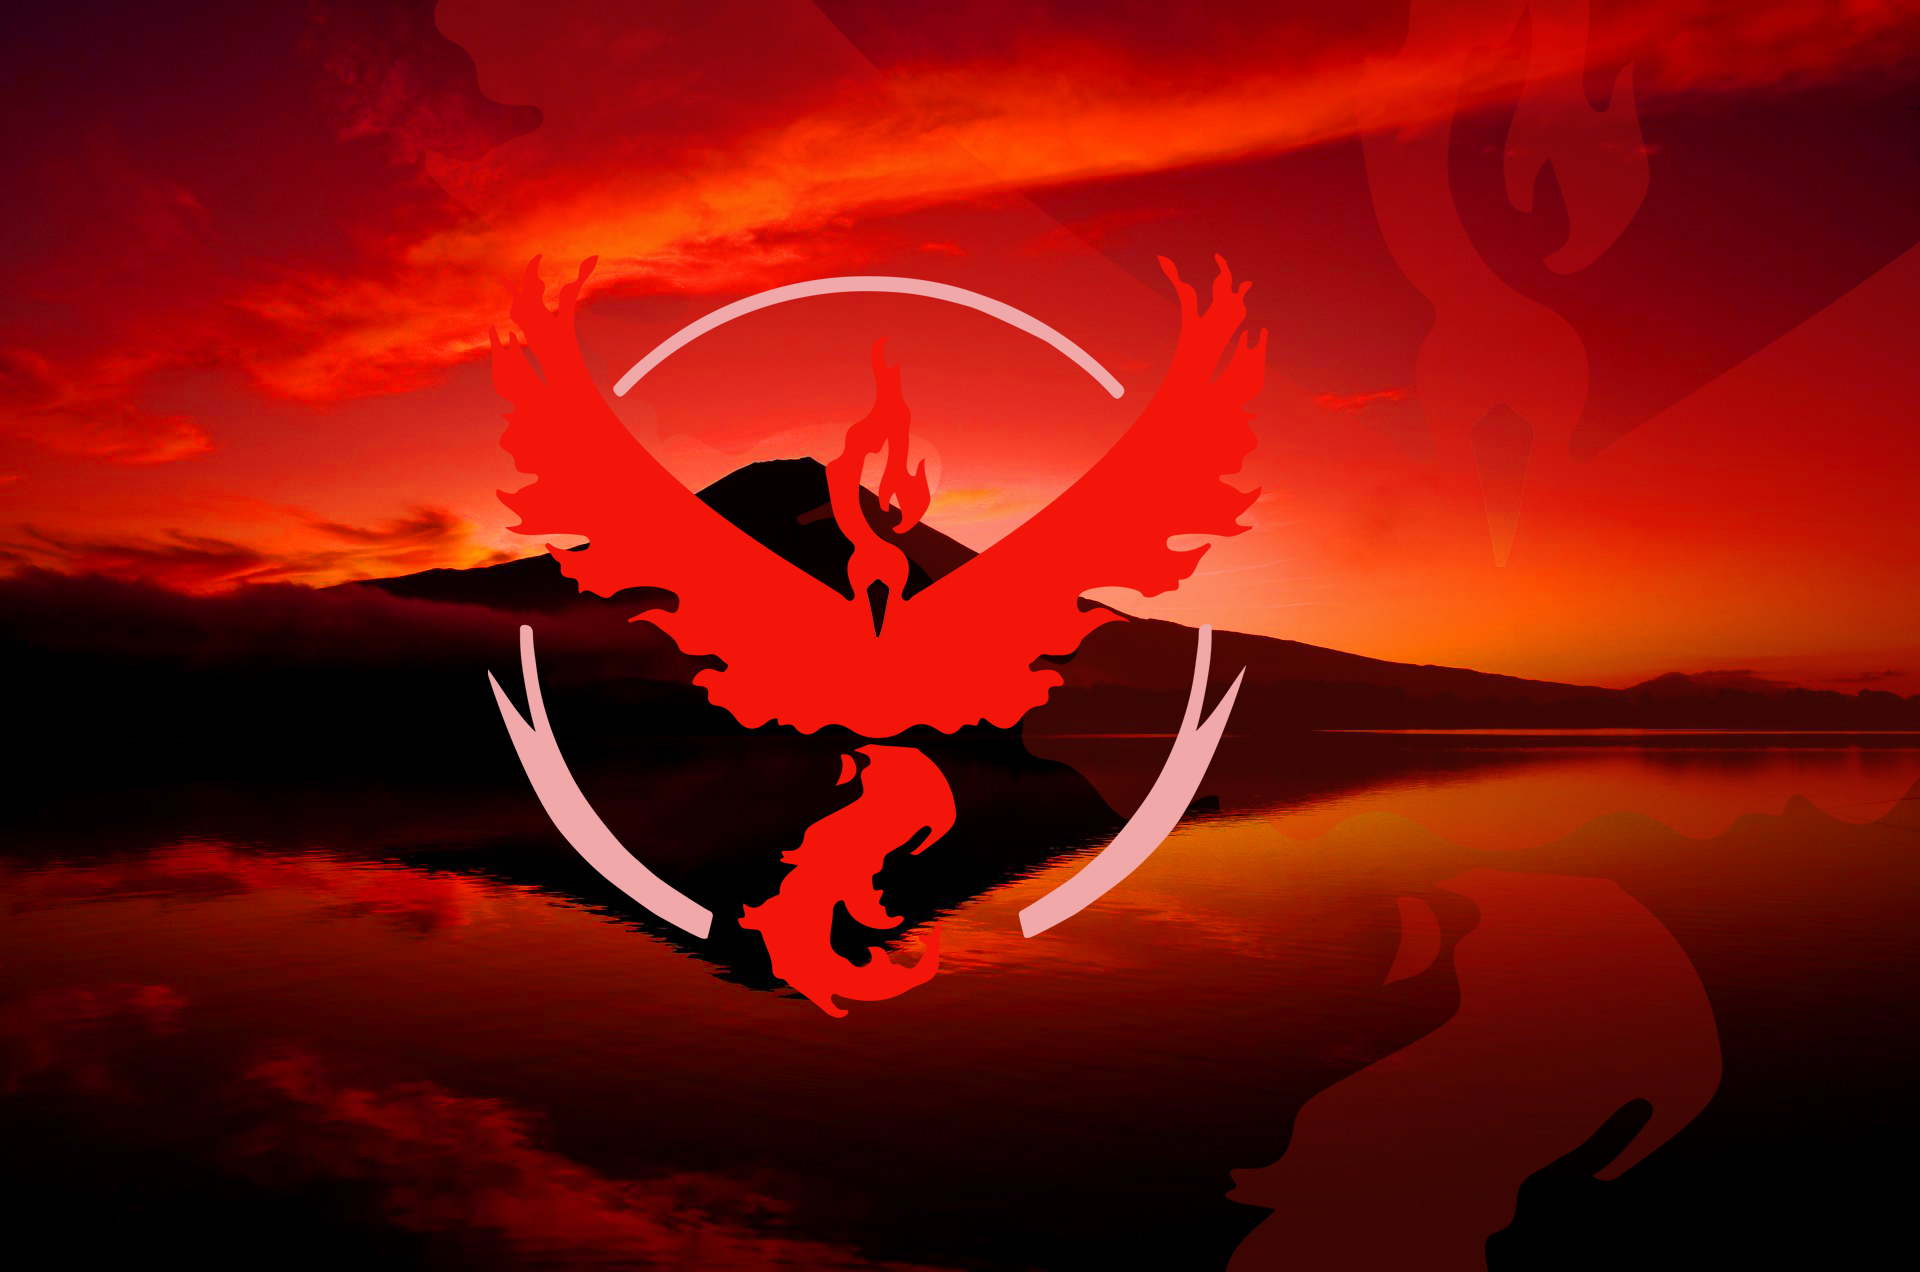 Pokemon Go Team Valor Hd Games 4k Wallpapers Images